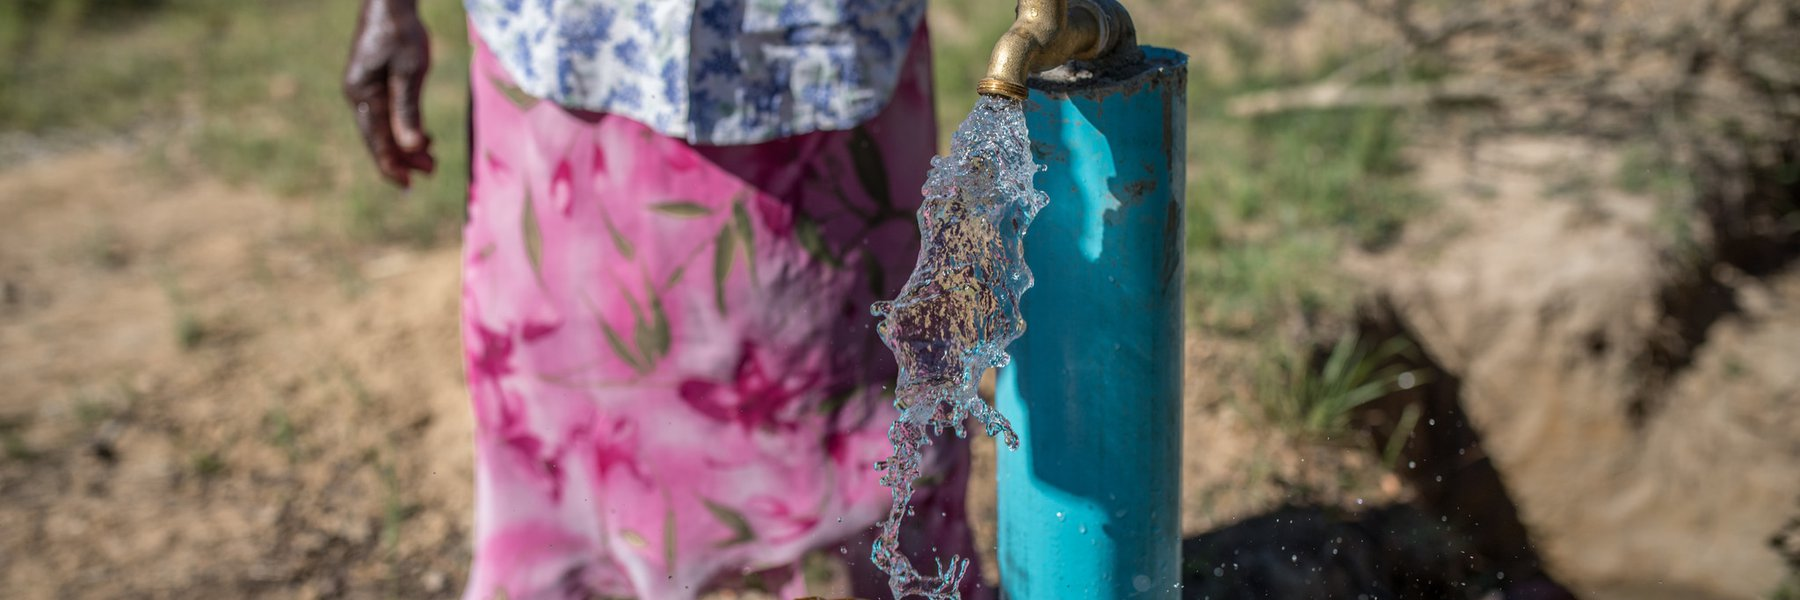 Water flows from a tap into a yellow water container. Emmely stands in the background.